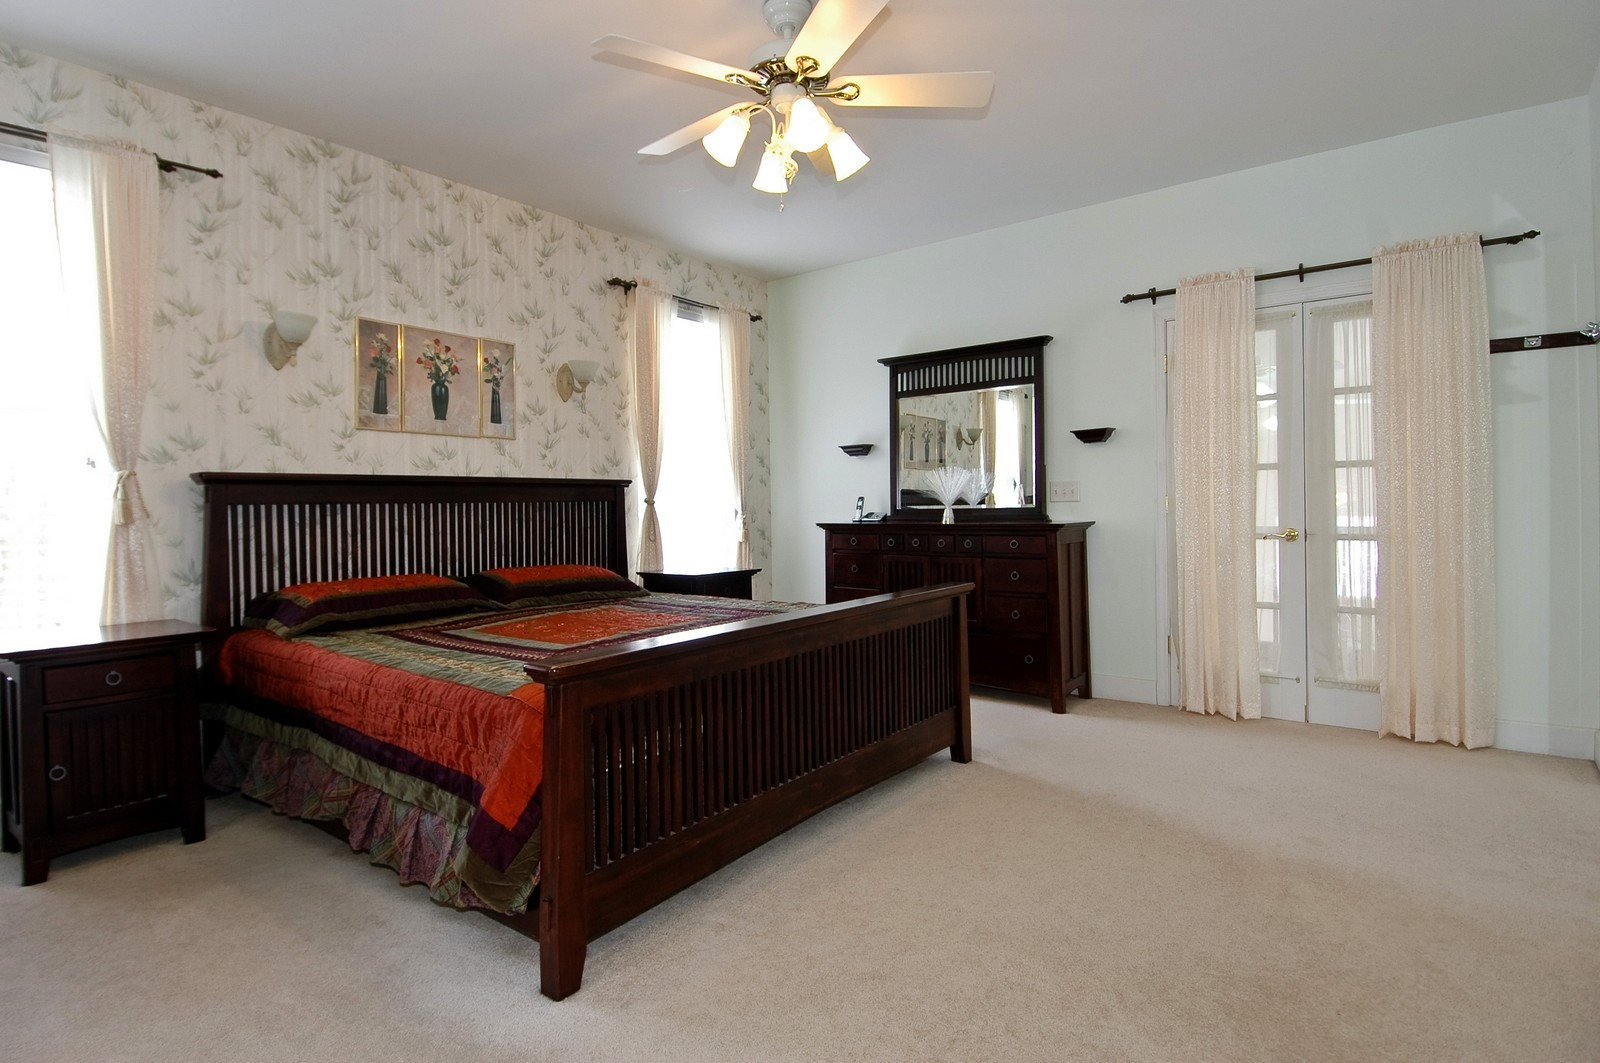 Real Estate Photography - 11811 Halma, Woodstock, IL, 60098 - Master Bedroom